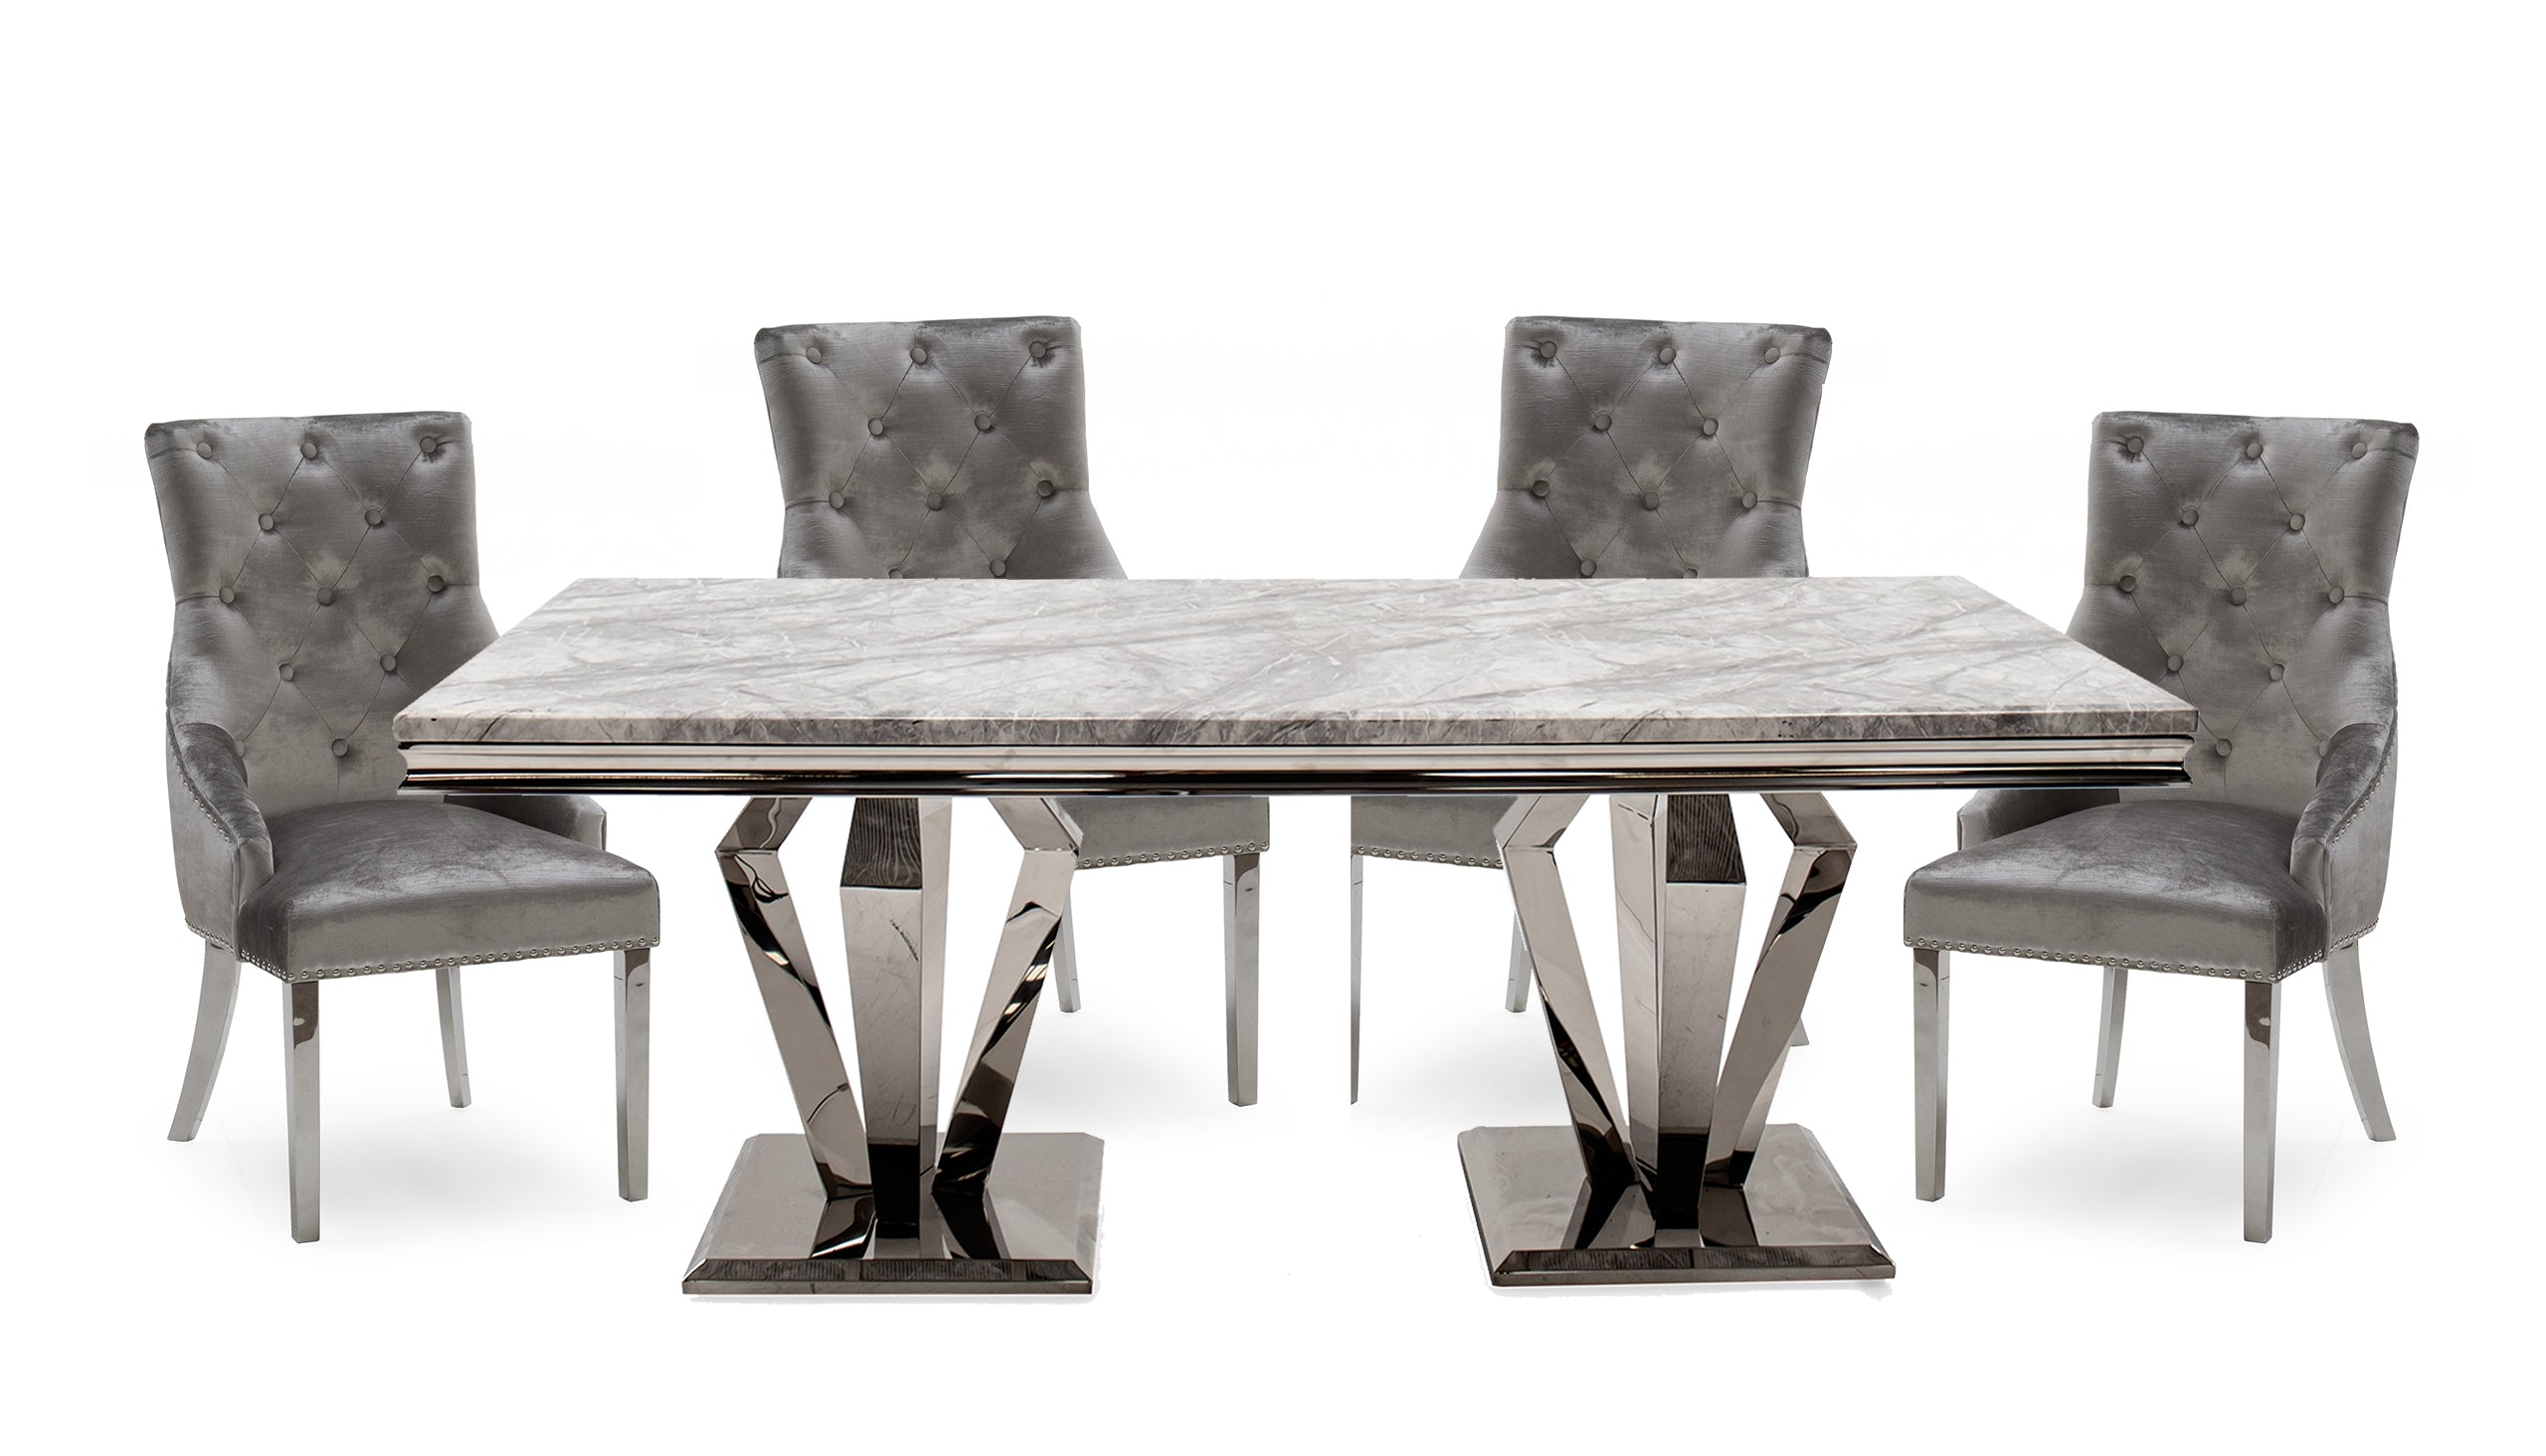 Amour 1.8m Marble Dining Table with 4 Chairs - AHF Furniture & Carpets